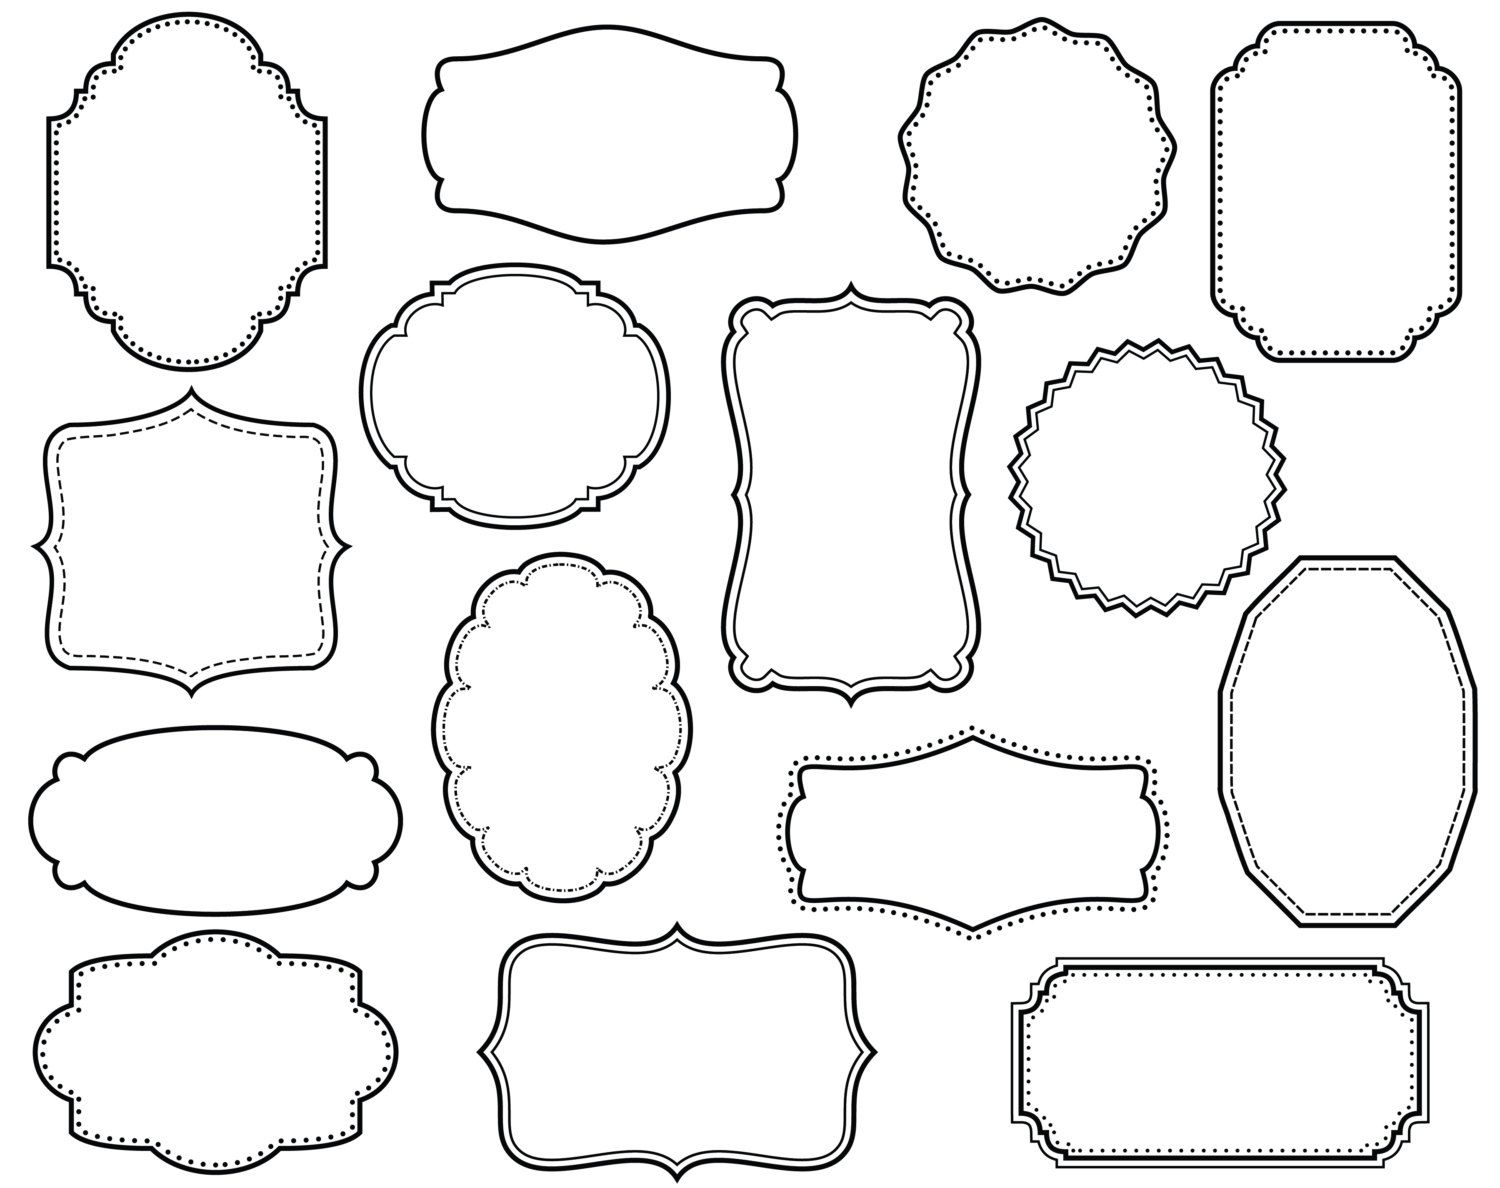 15 digital scrapbook frames clip art clipart by for Decor outline